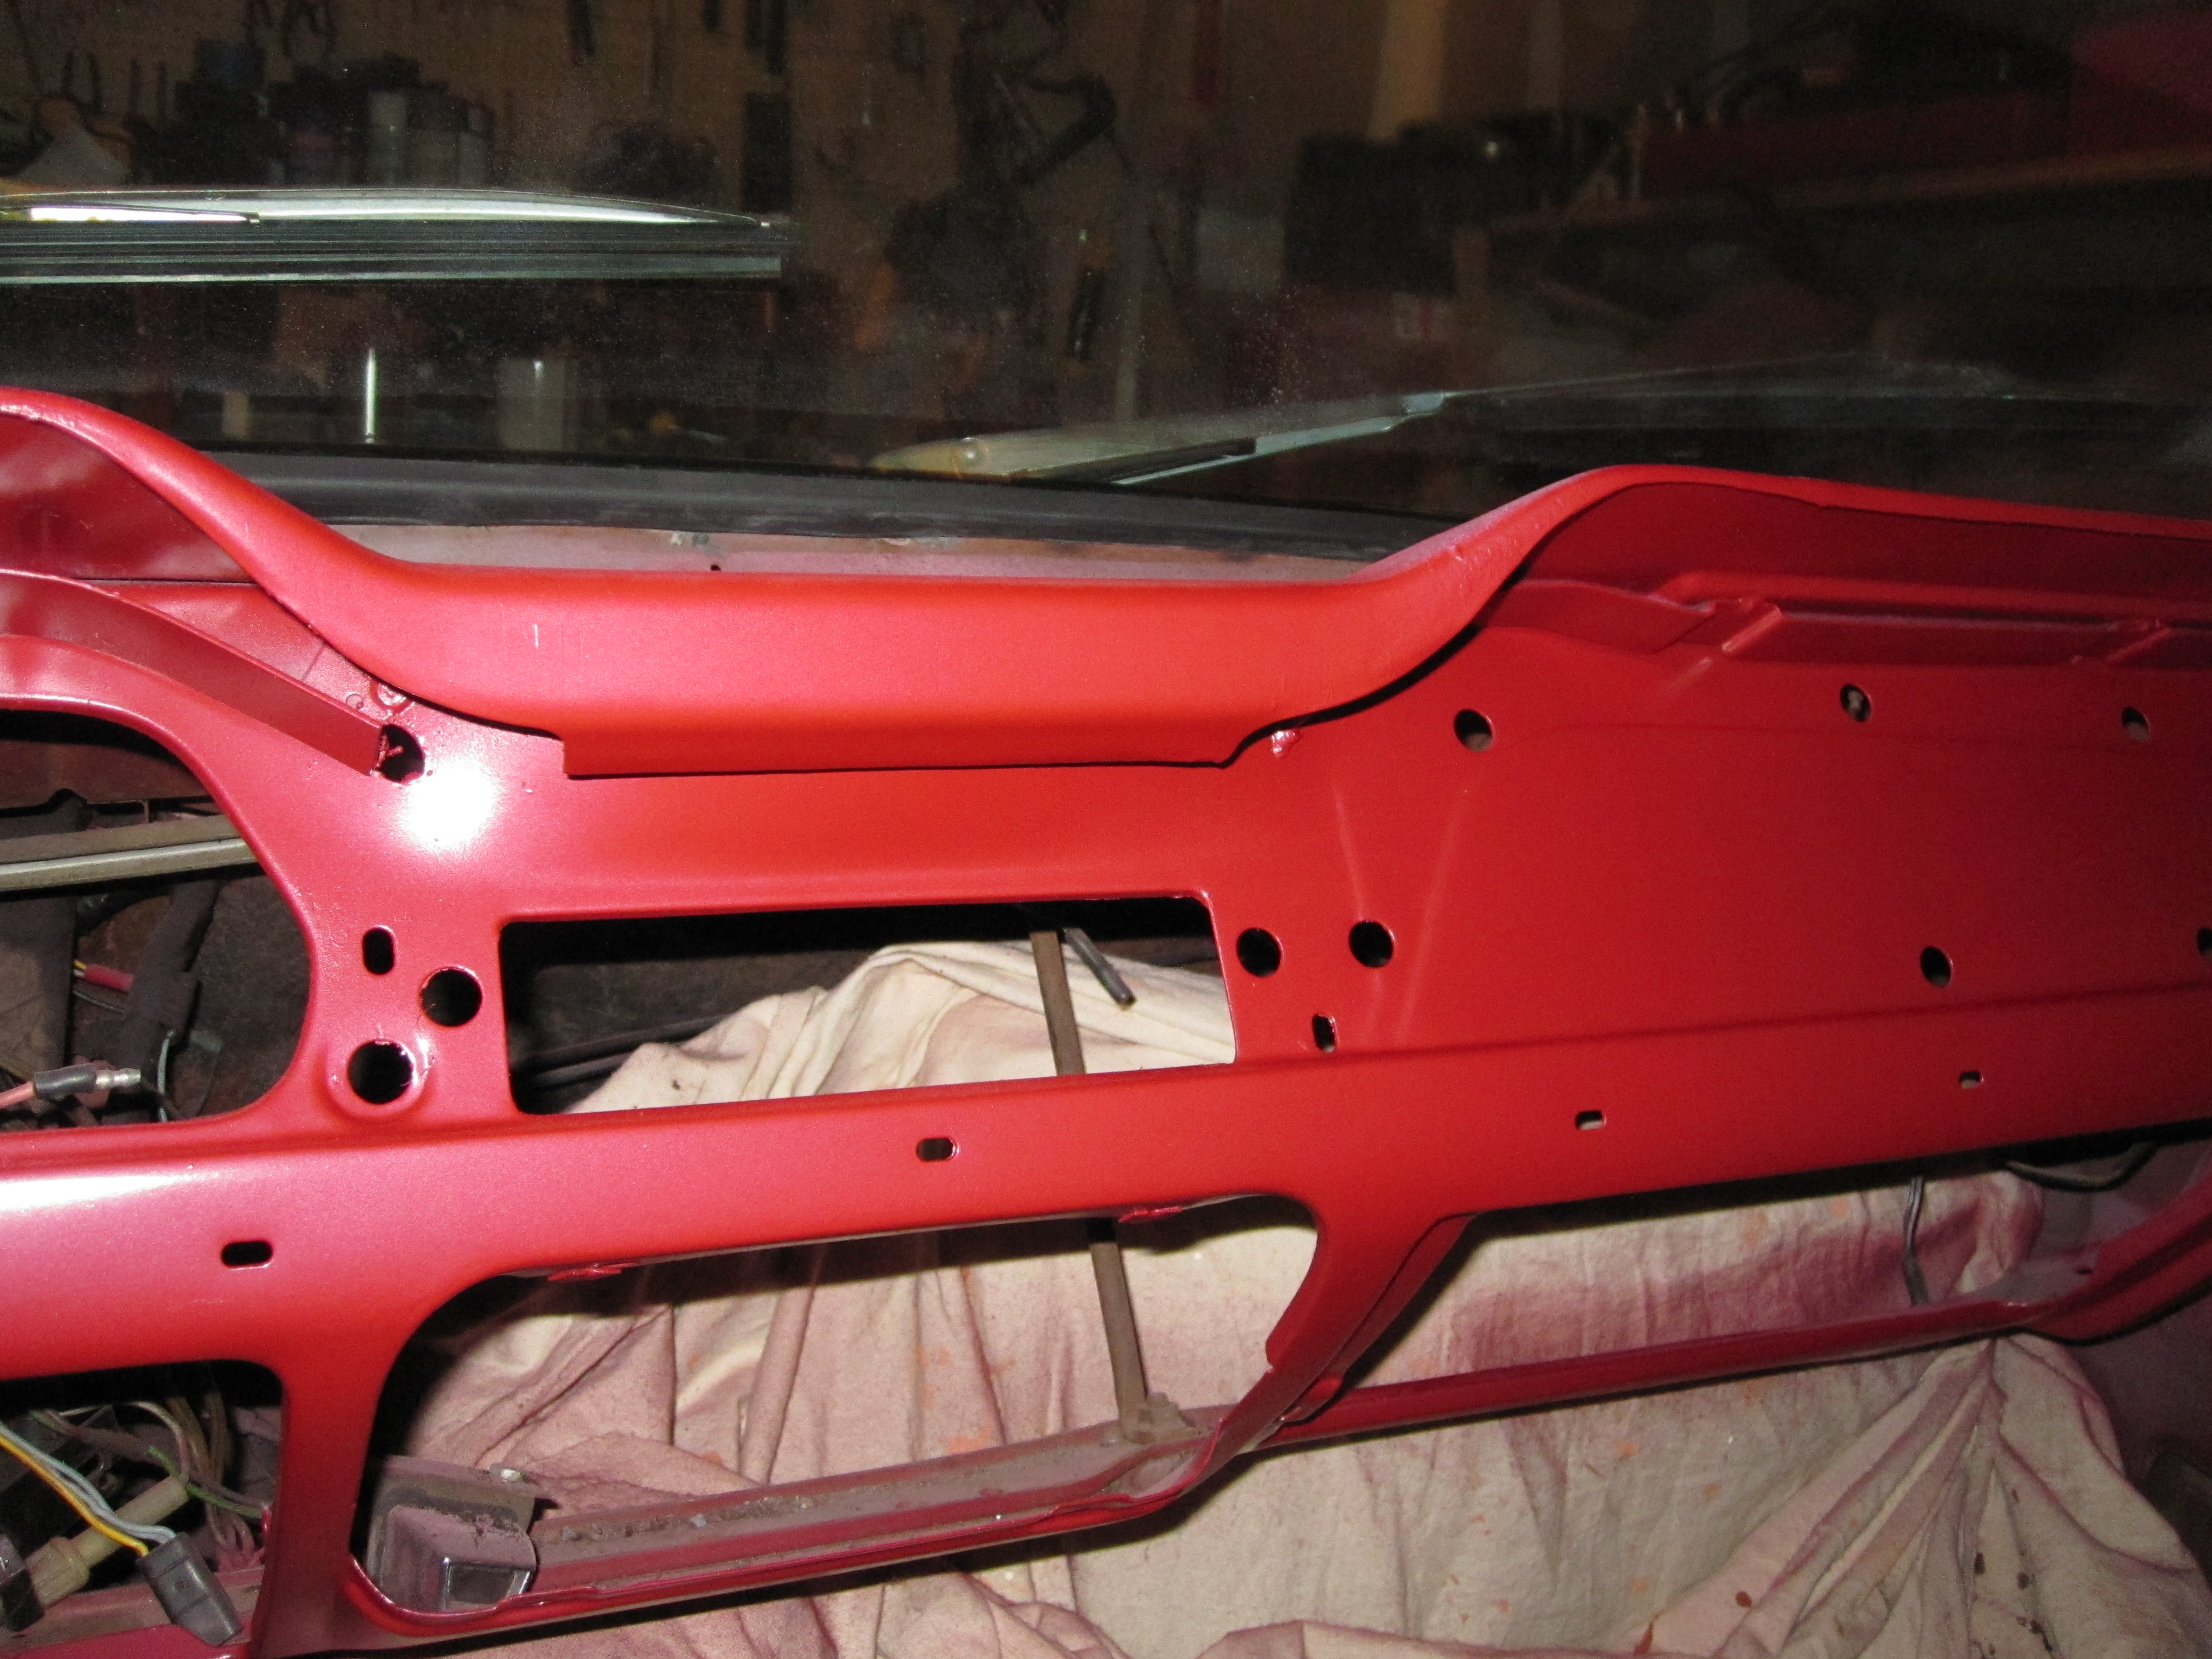 Blog Page 4 My 1967 Mustang Coupe Gauge Cluster Circuit Board Housing Instrument Panel Ebay Dash Came Out Img 0932 0933 0934 Admin September 3 2014 Category